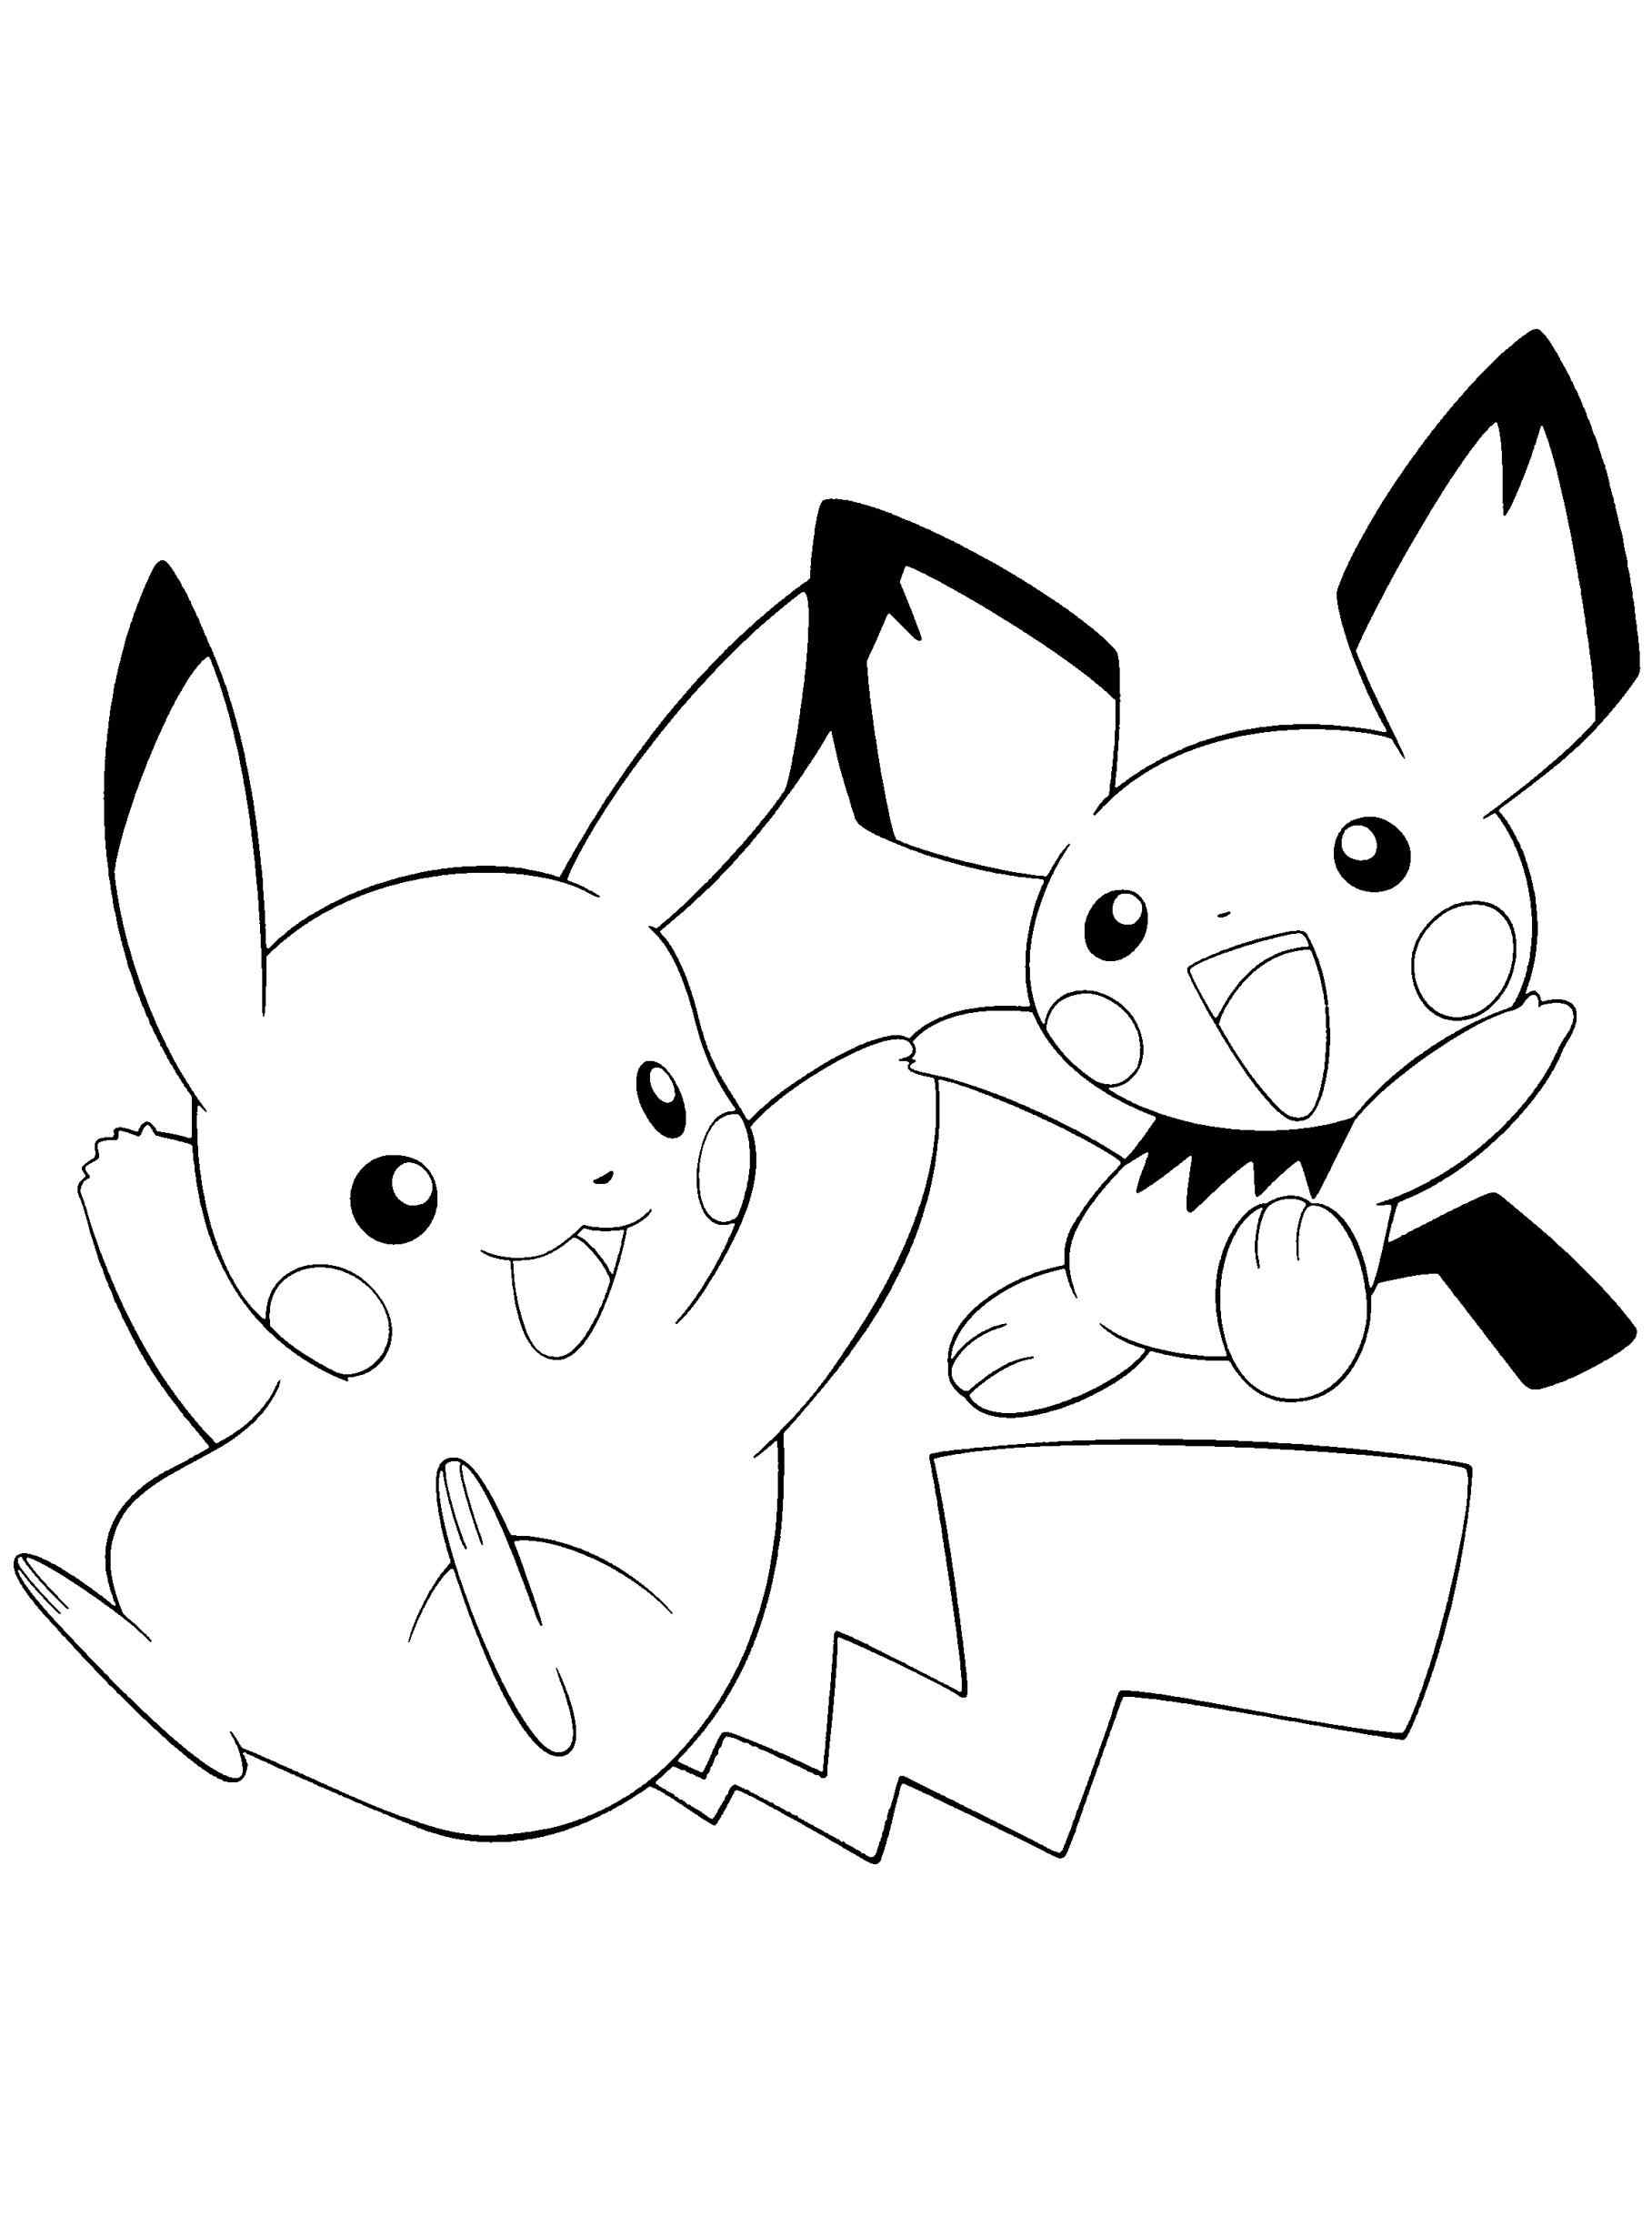 pikachu coloring pages pokemon thunderbolt attack 10 pikachu coloring pages pages coloring pikachu